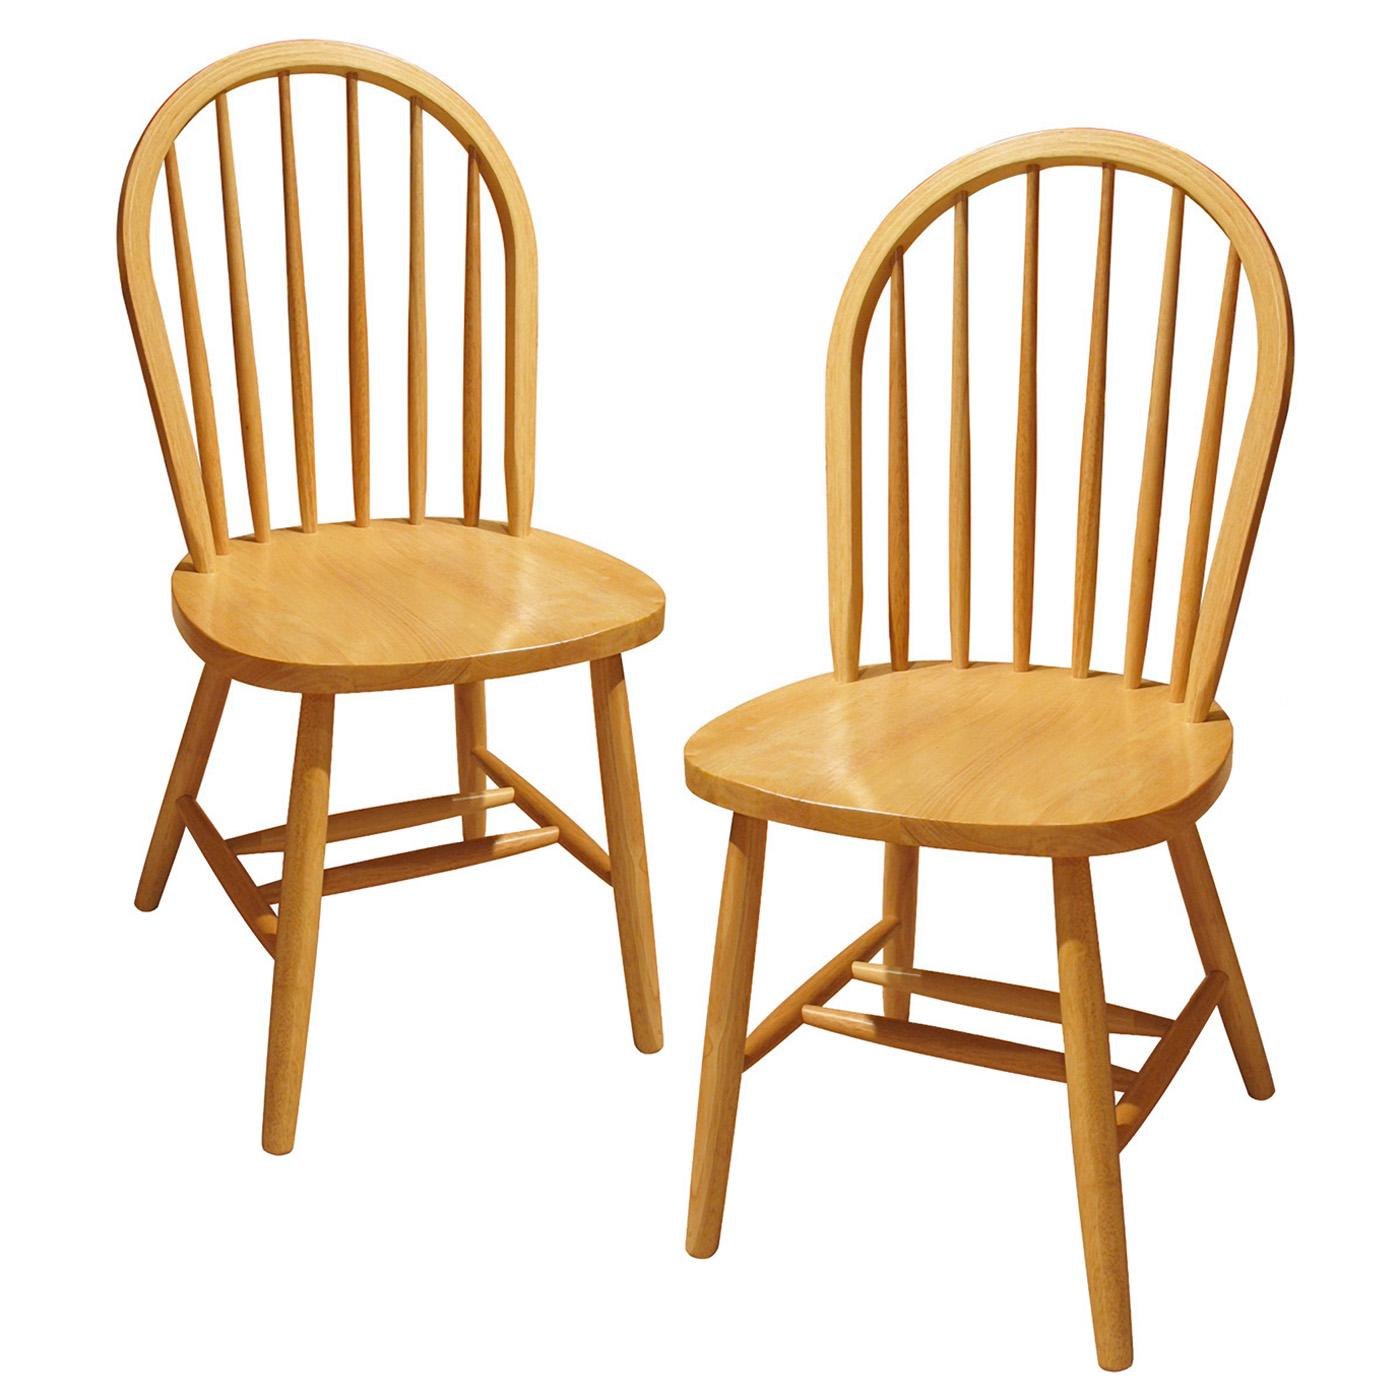 Winsome set of windsor chair assembled by oj commerce